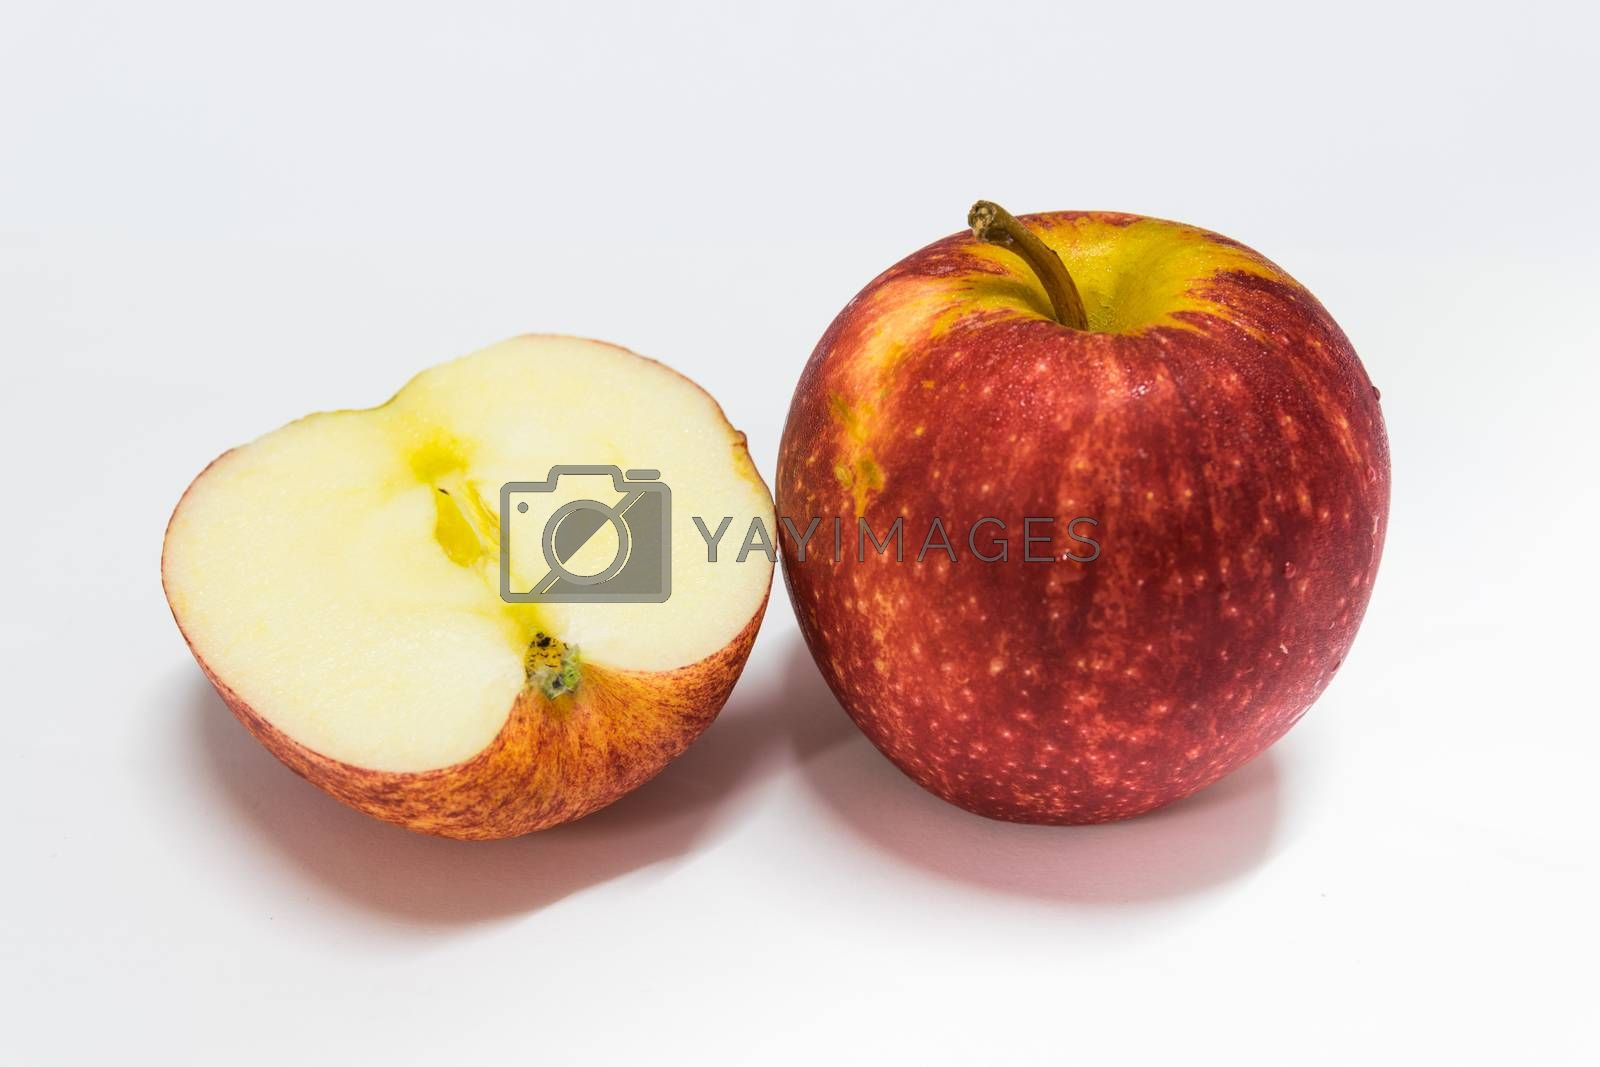 Red apple with white background.